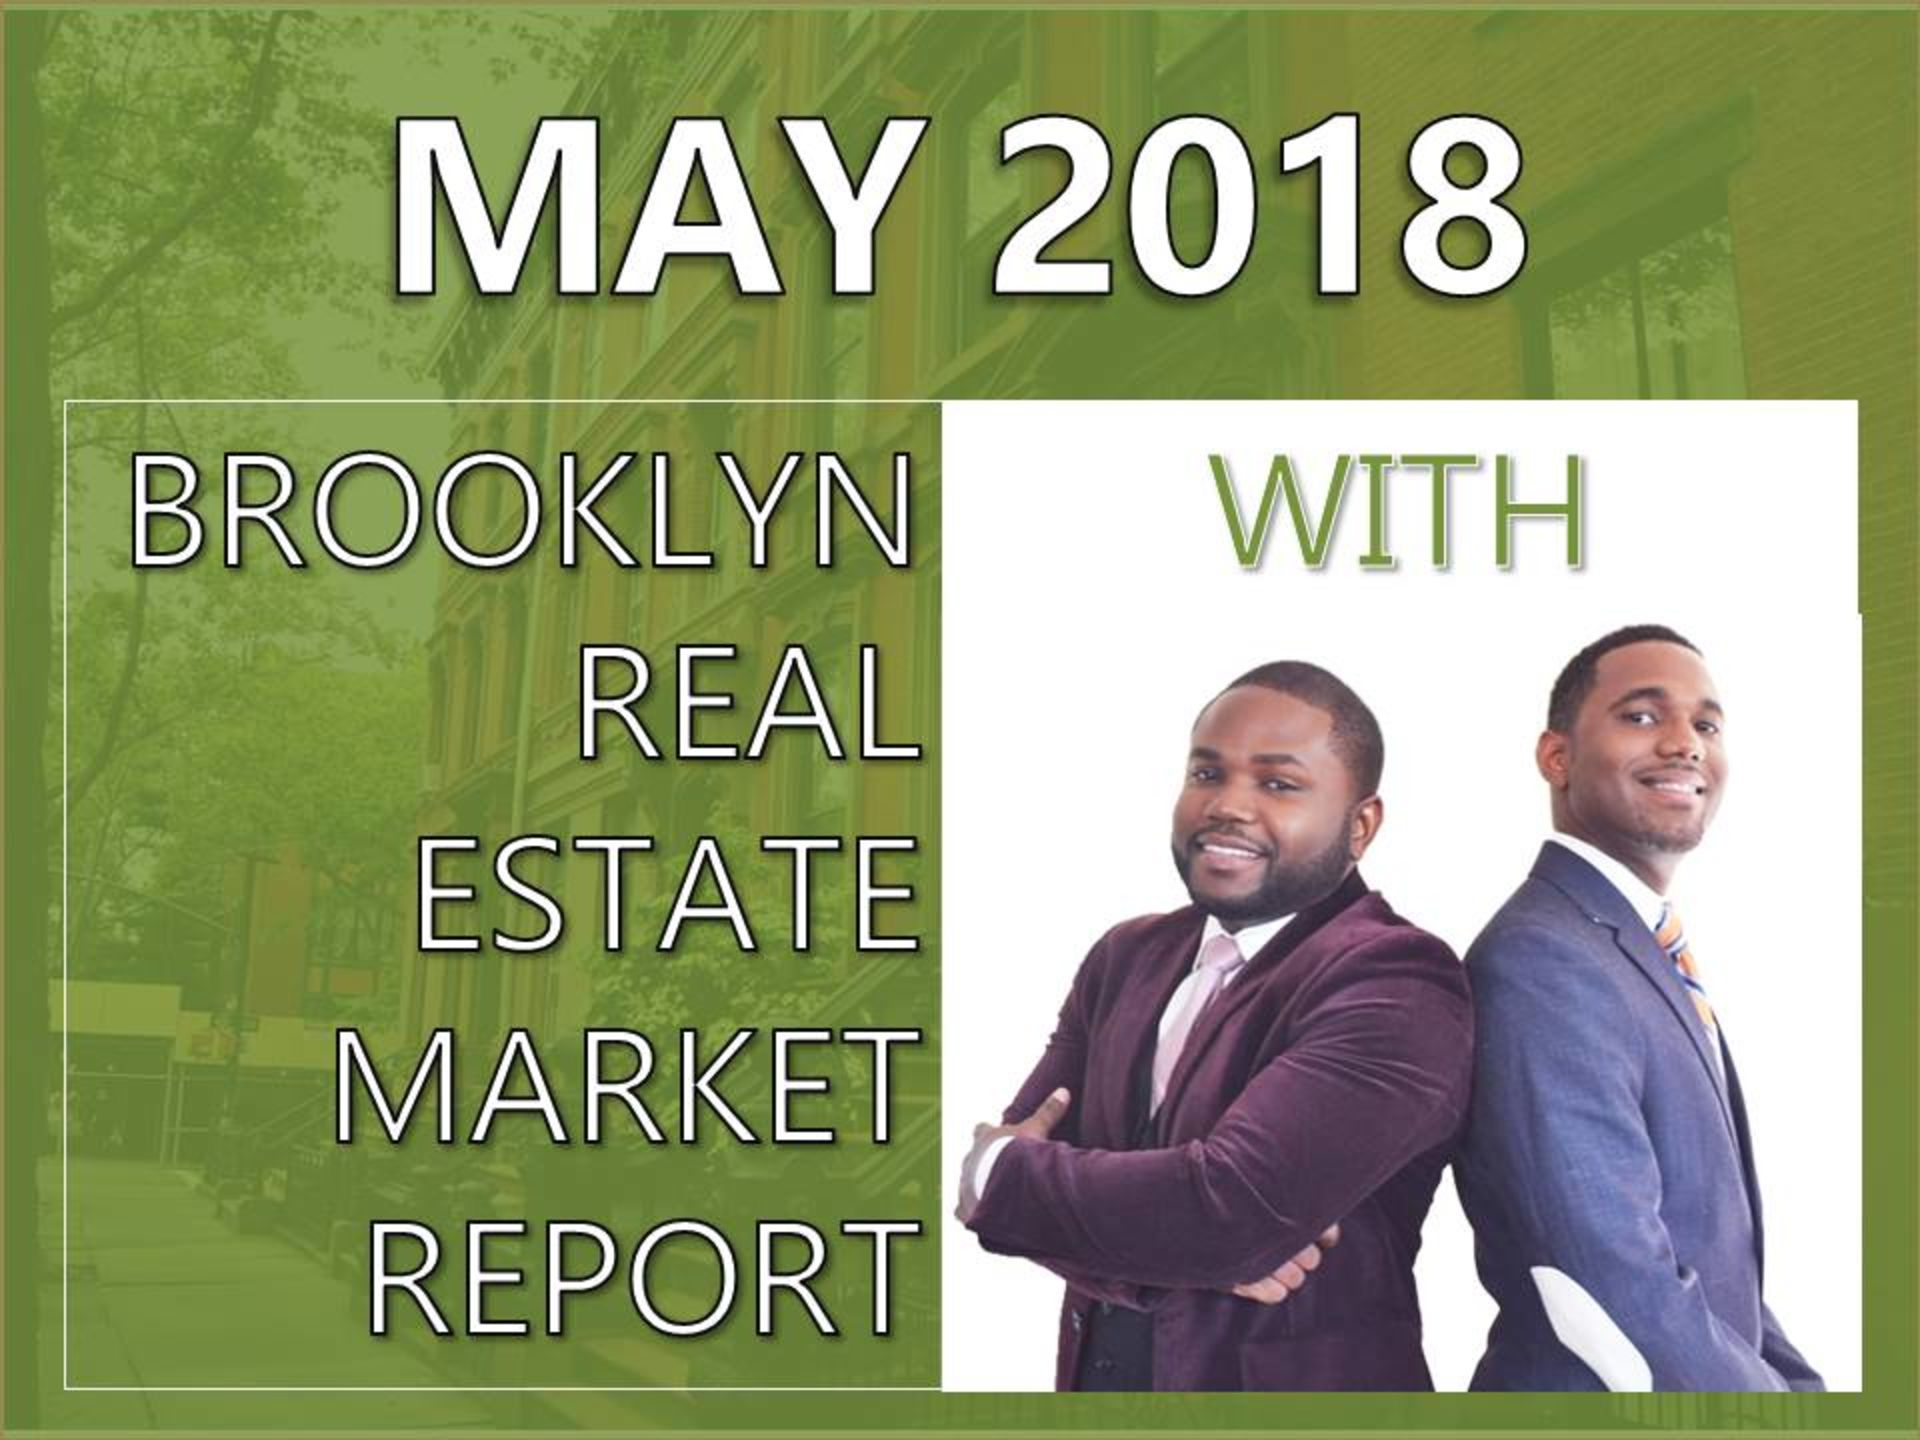 May 2018 Brooklyn Real Estate Market Report